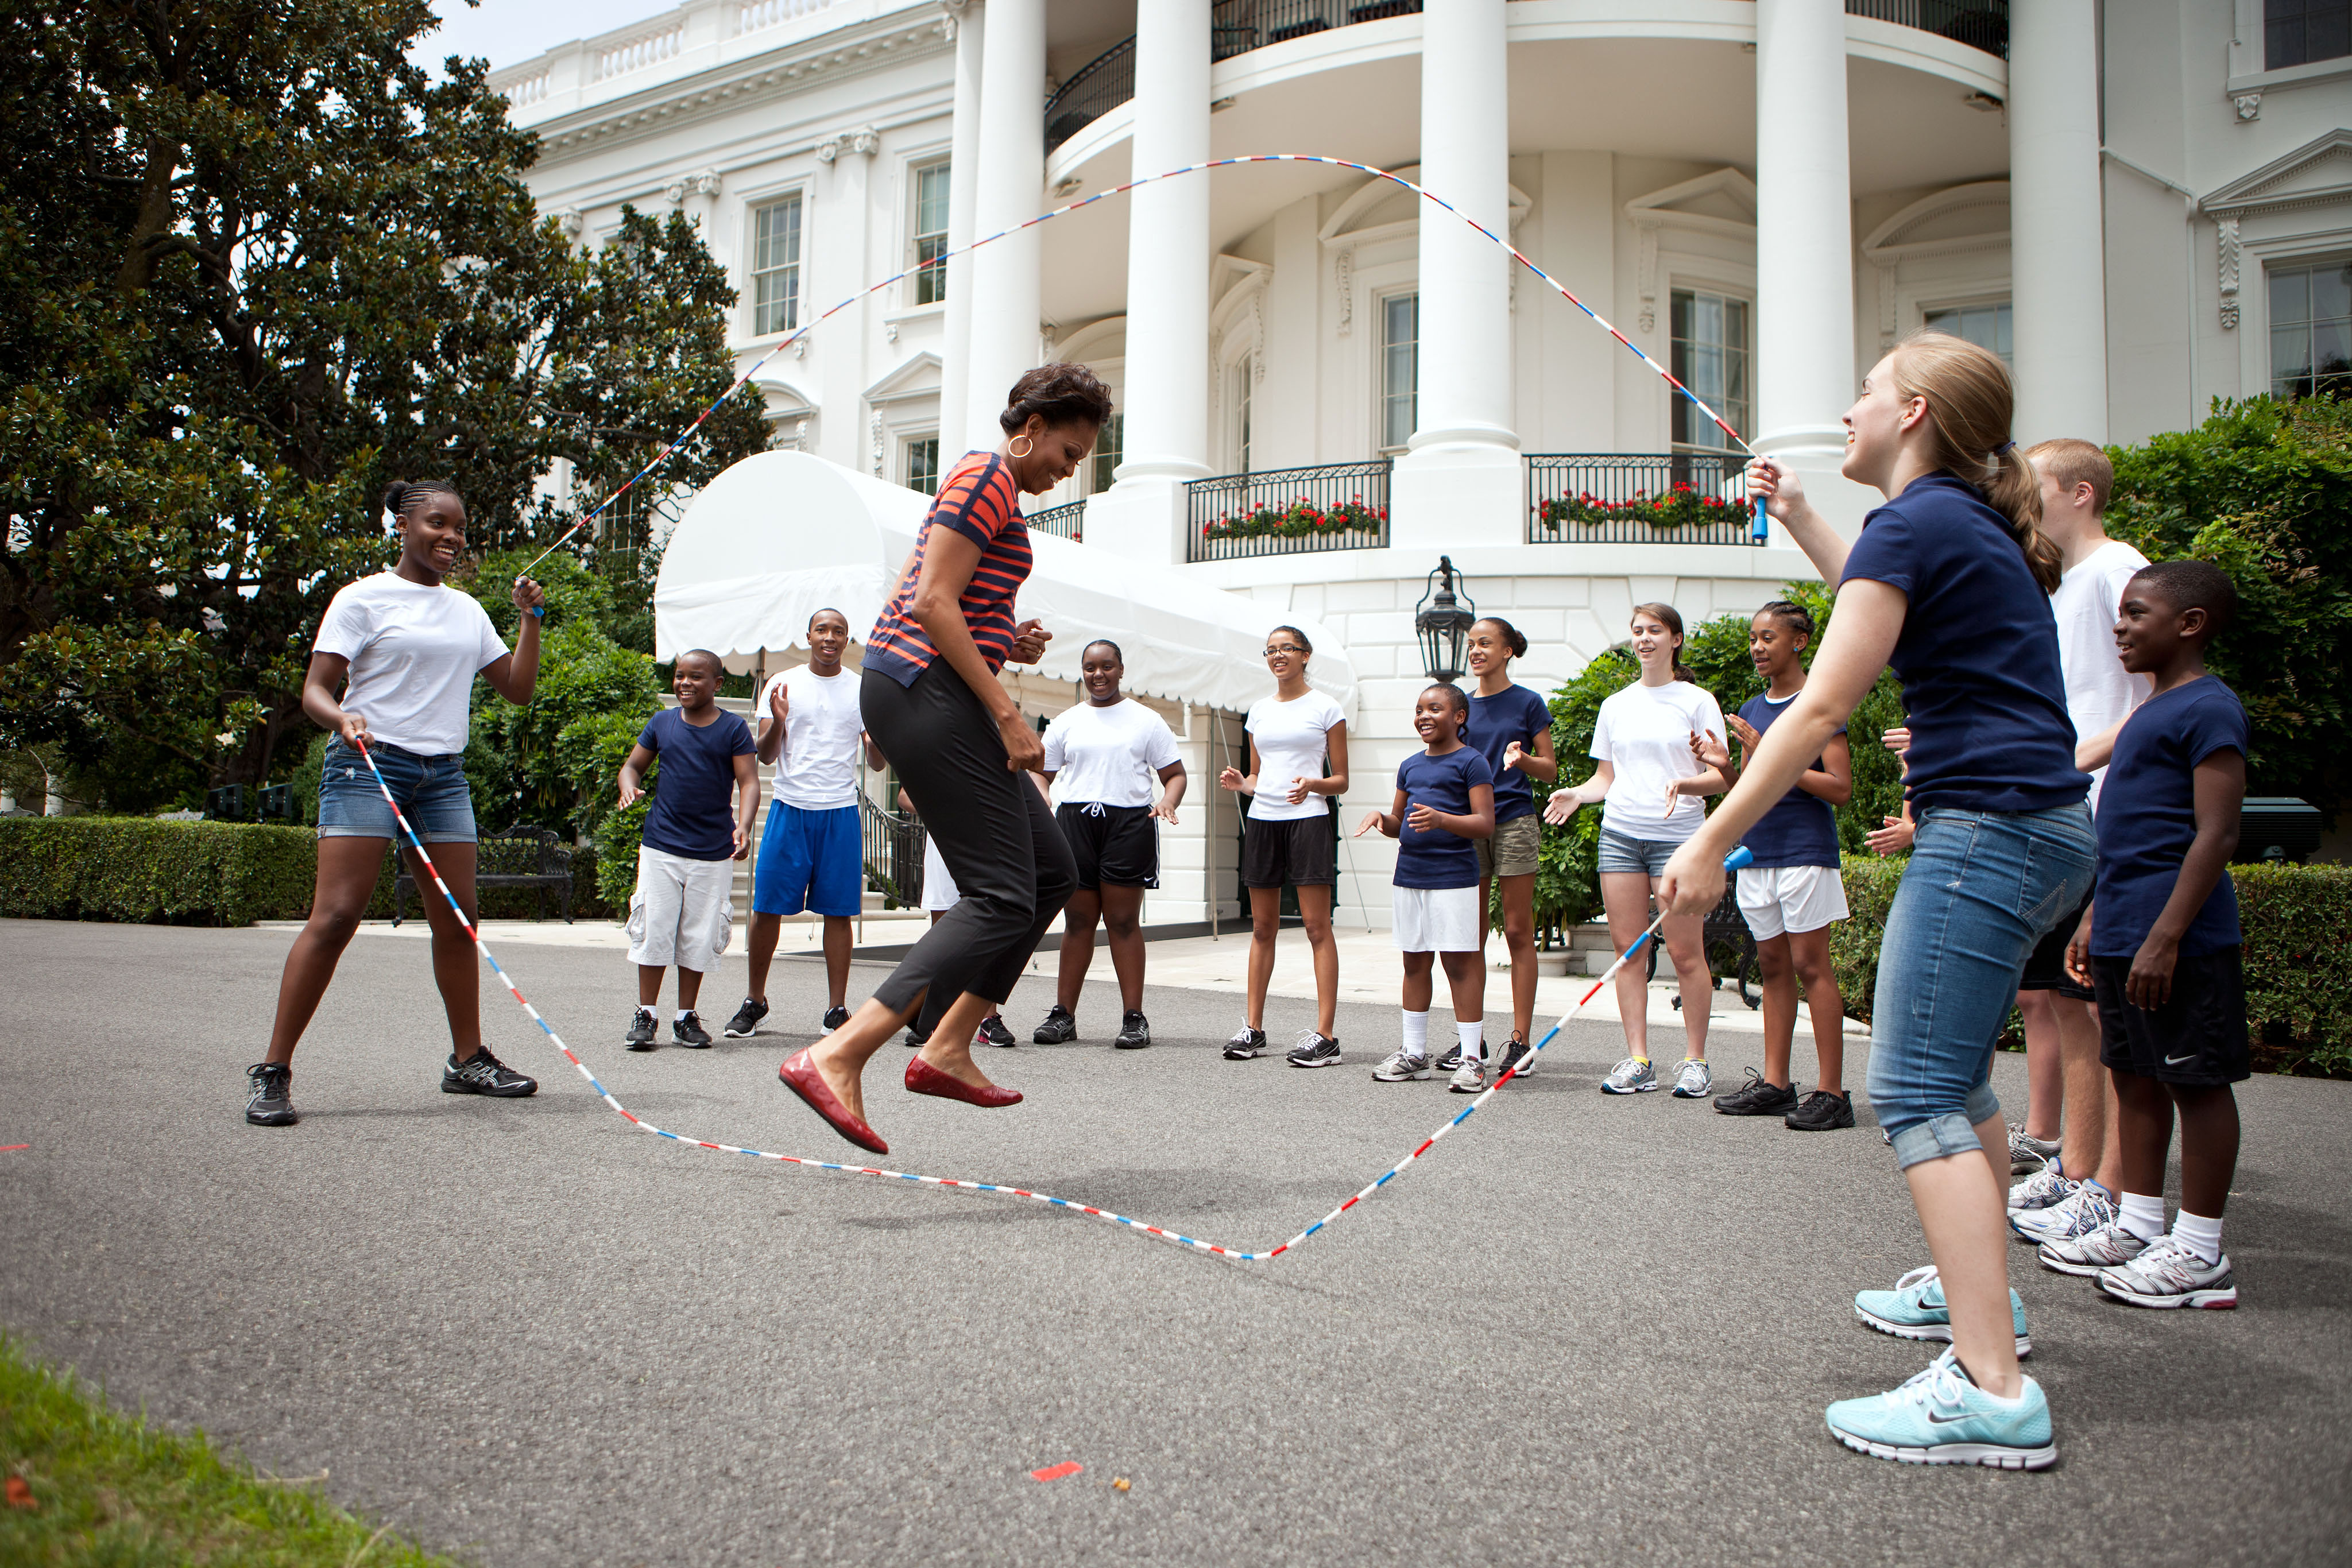 Michelle Obama jumping rope at the White House in July 2011